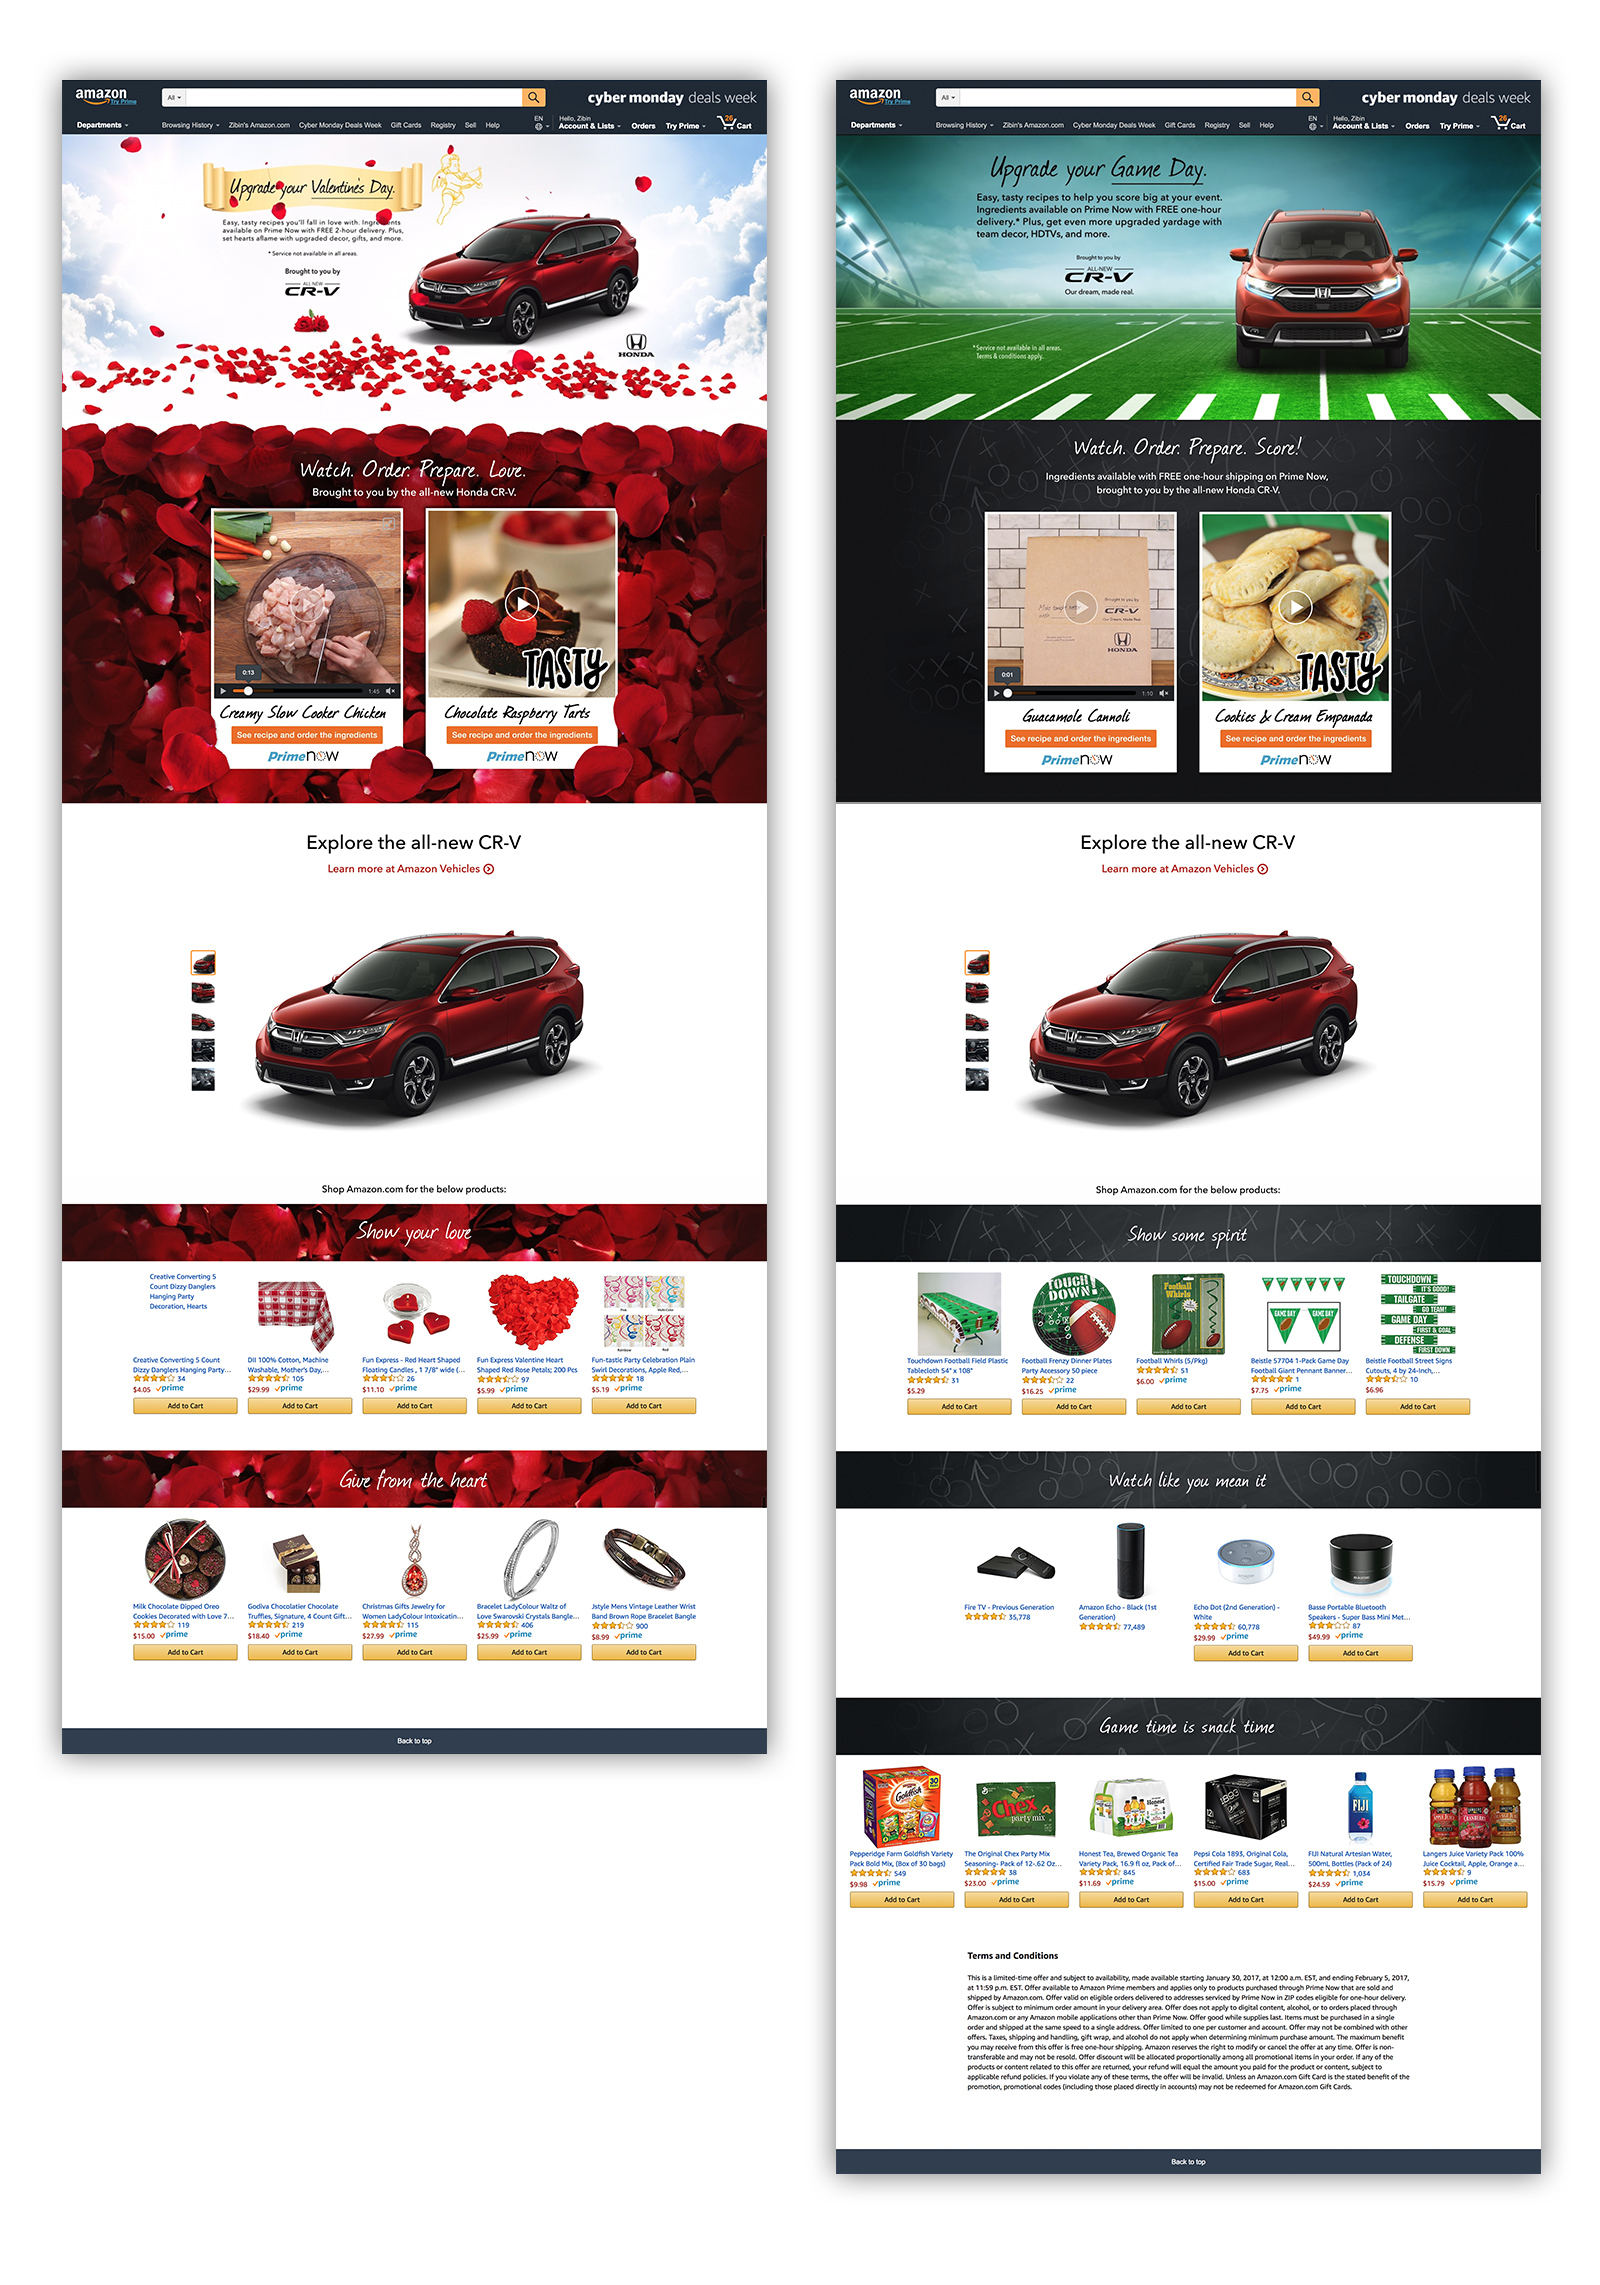 Amazon Custom Campaign Landing Page Experience Full Preview